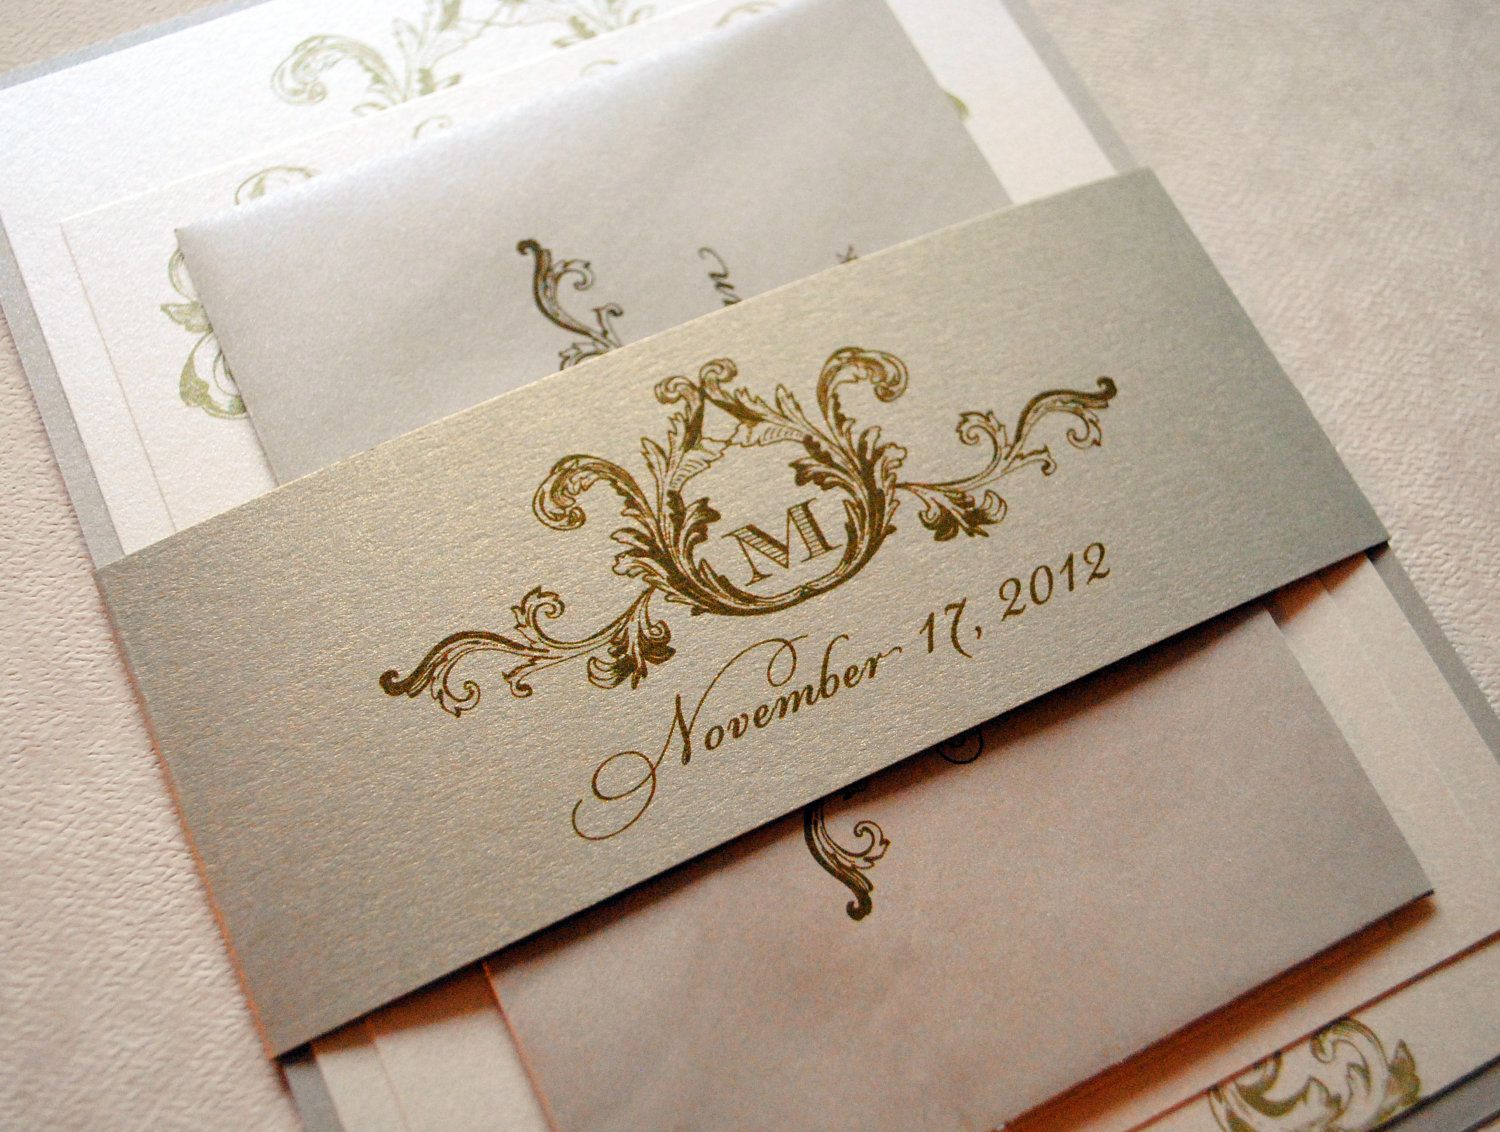 Best 25 Elegant wedding invitations ideas – How to Make Beautiful Wedding Invitations